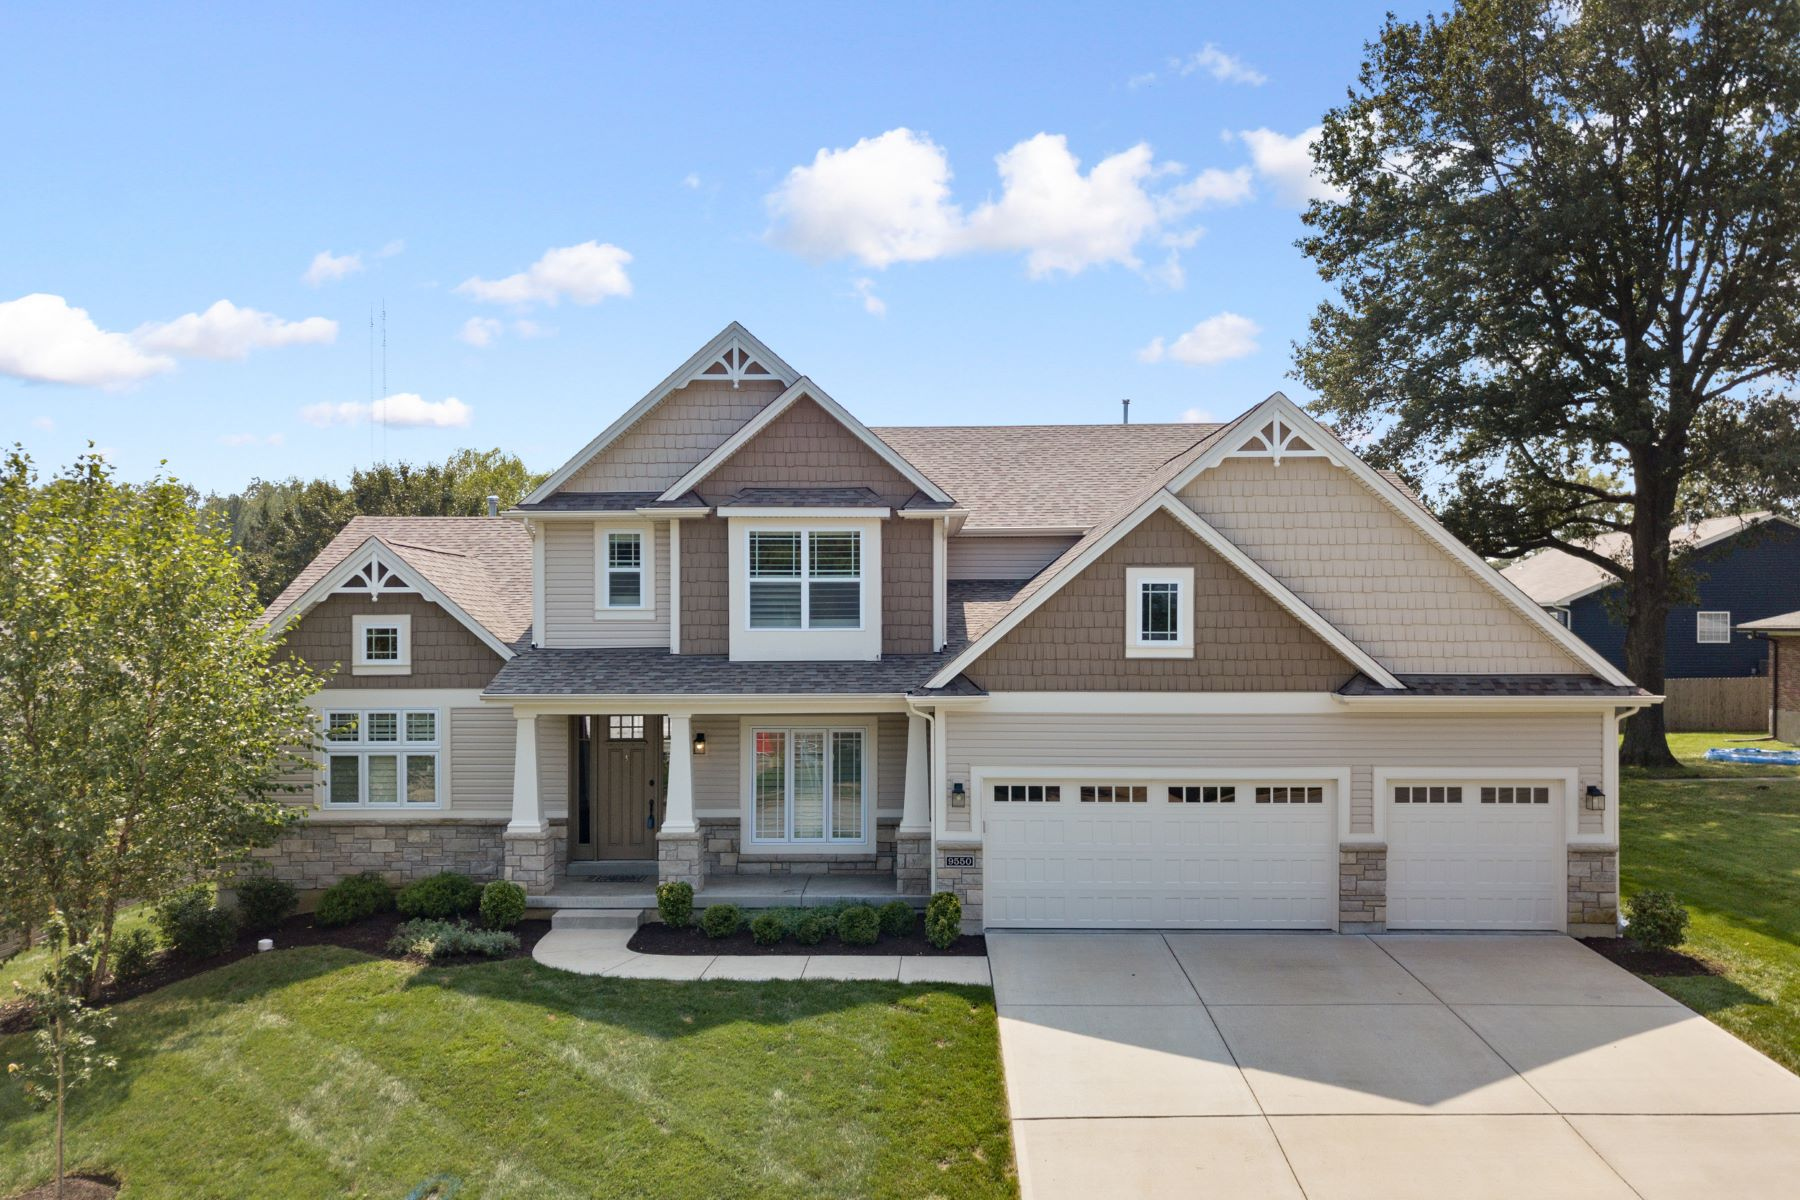 Property for Sale at Fabulous Dream Home in Lindbergh Schools 9550 Garber Road Crestwood, Missouri 63126 United States